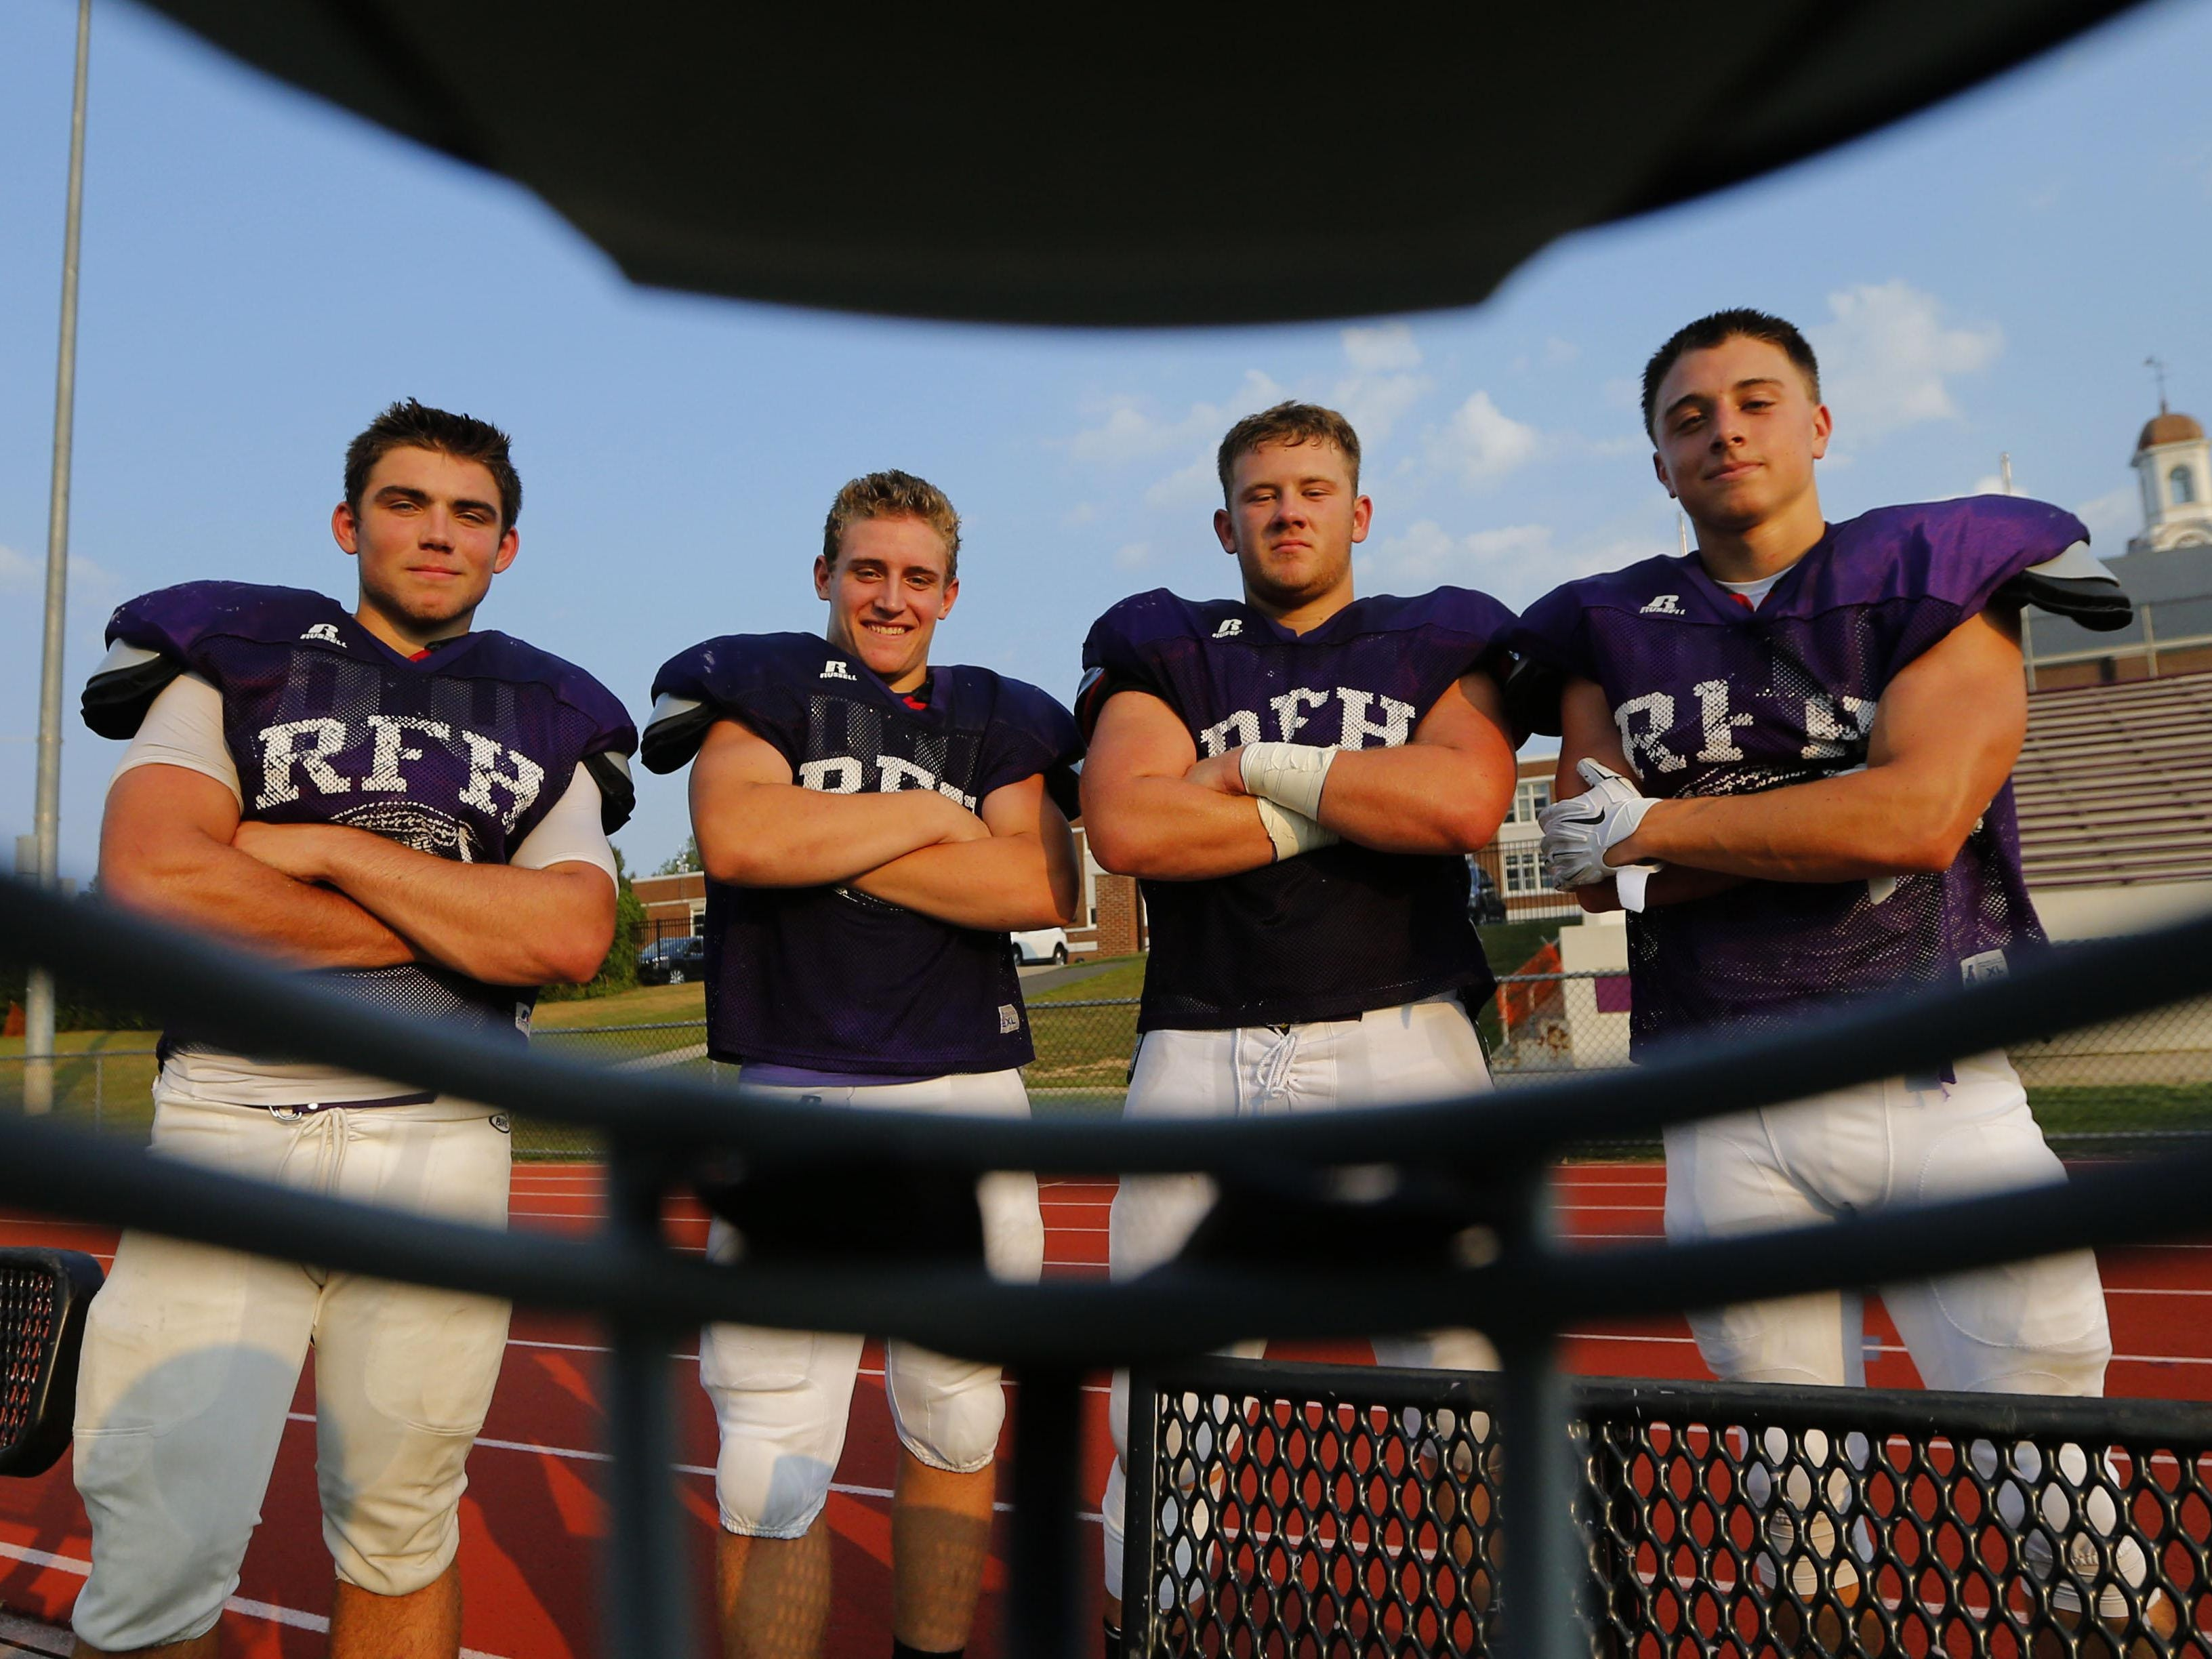 Rumson Fair-Haven's Mike Caruso, Mike Murdock, Mike Runane and Max Pfrang are shown through a facemask this summer.